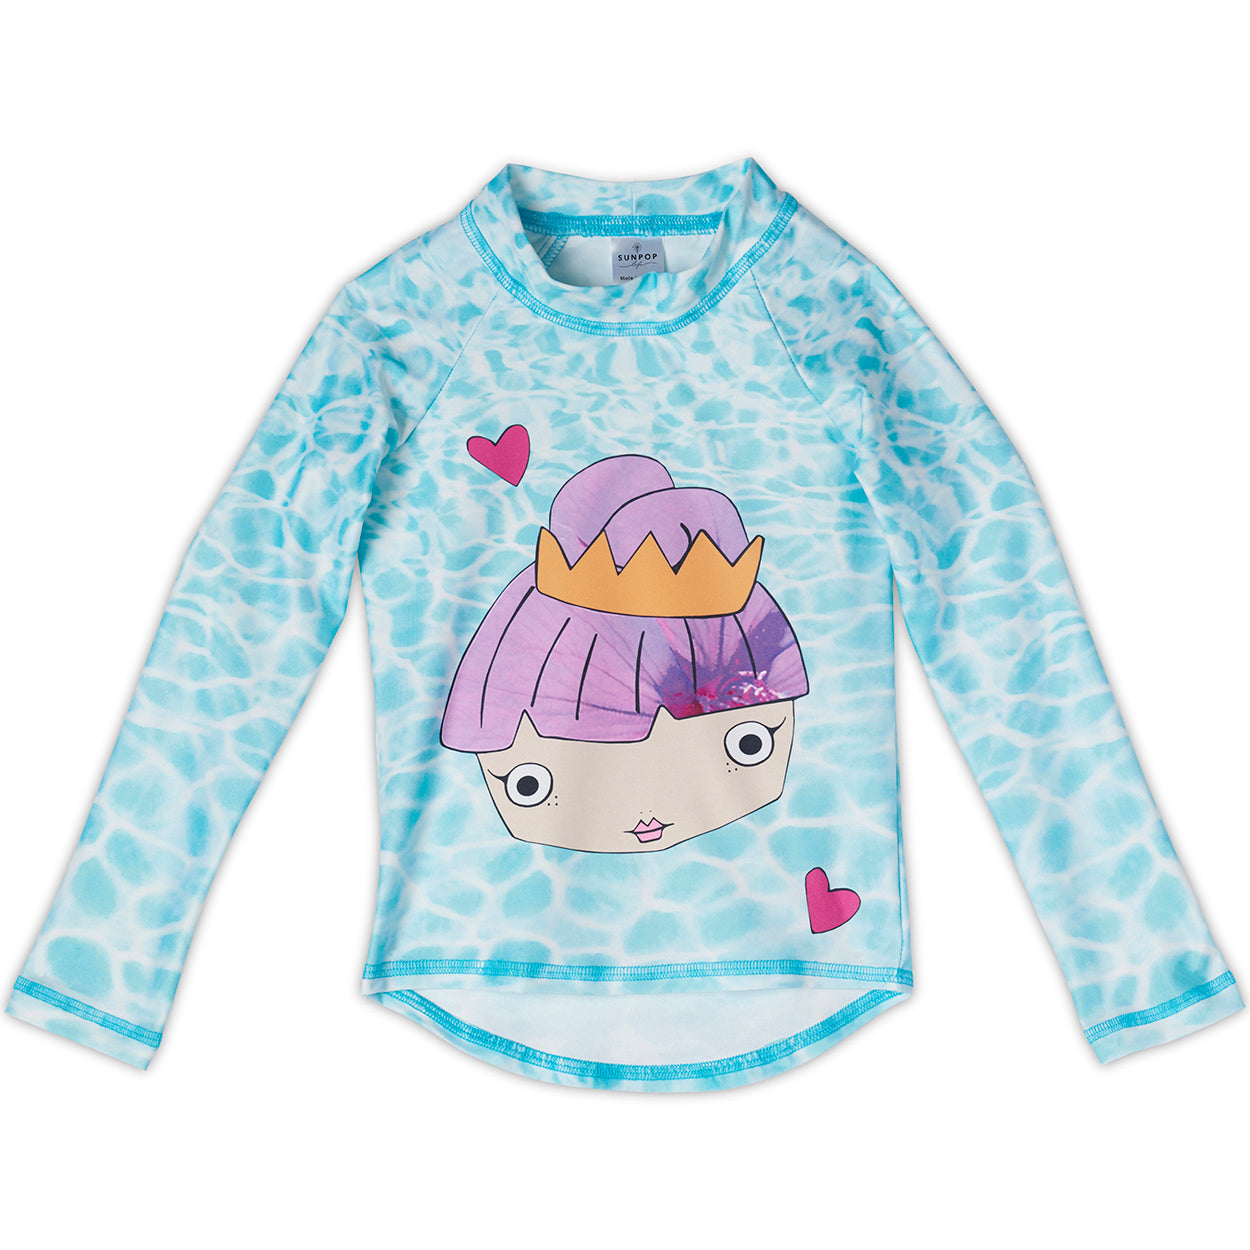 Mermaid Rash Guard Top Girls Sunpoplife